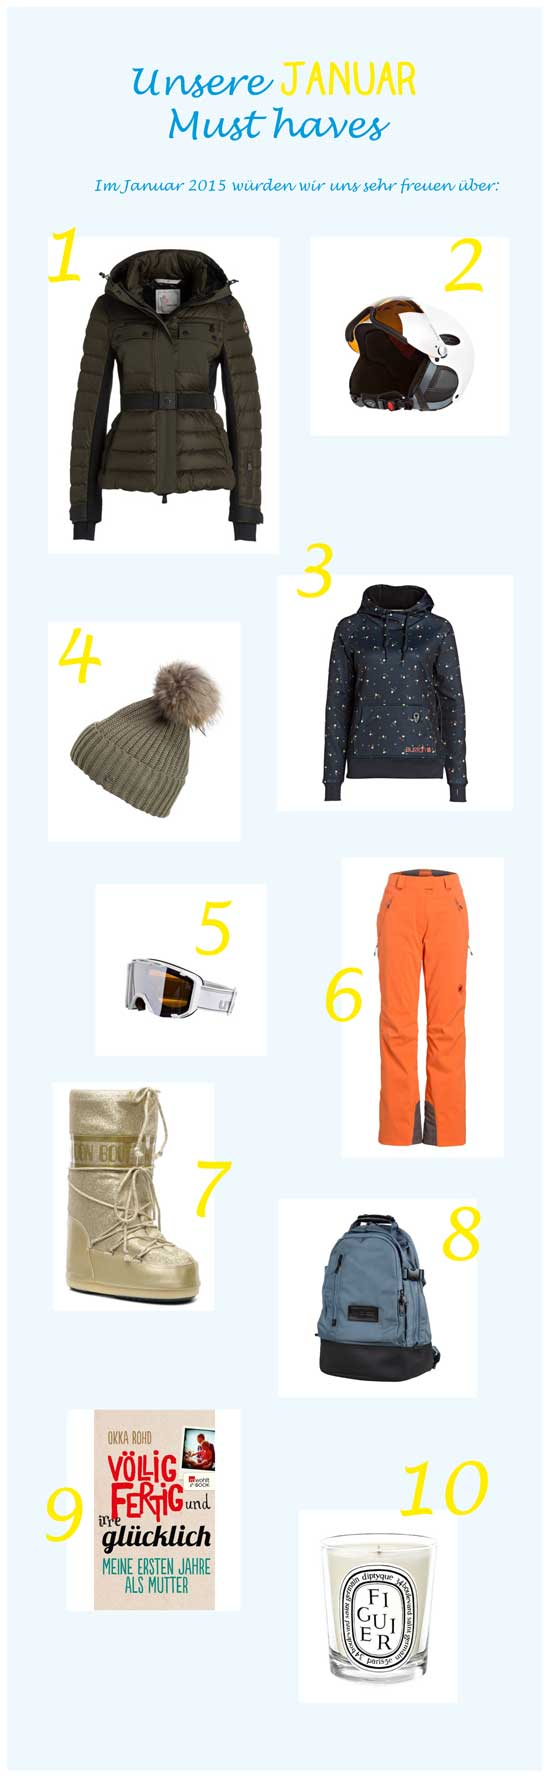 Januar-Must-haves-2015hellblau